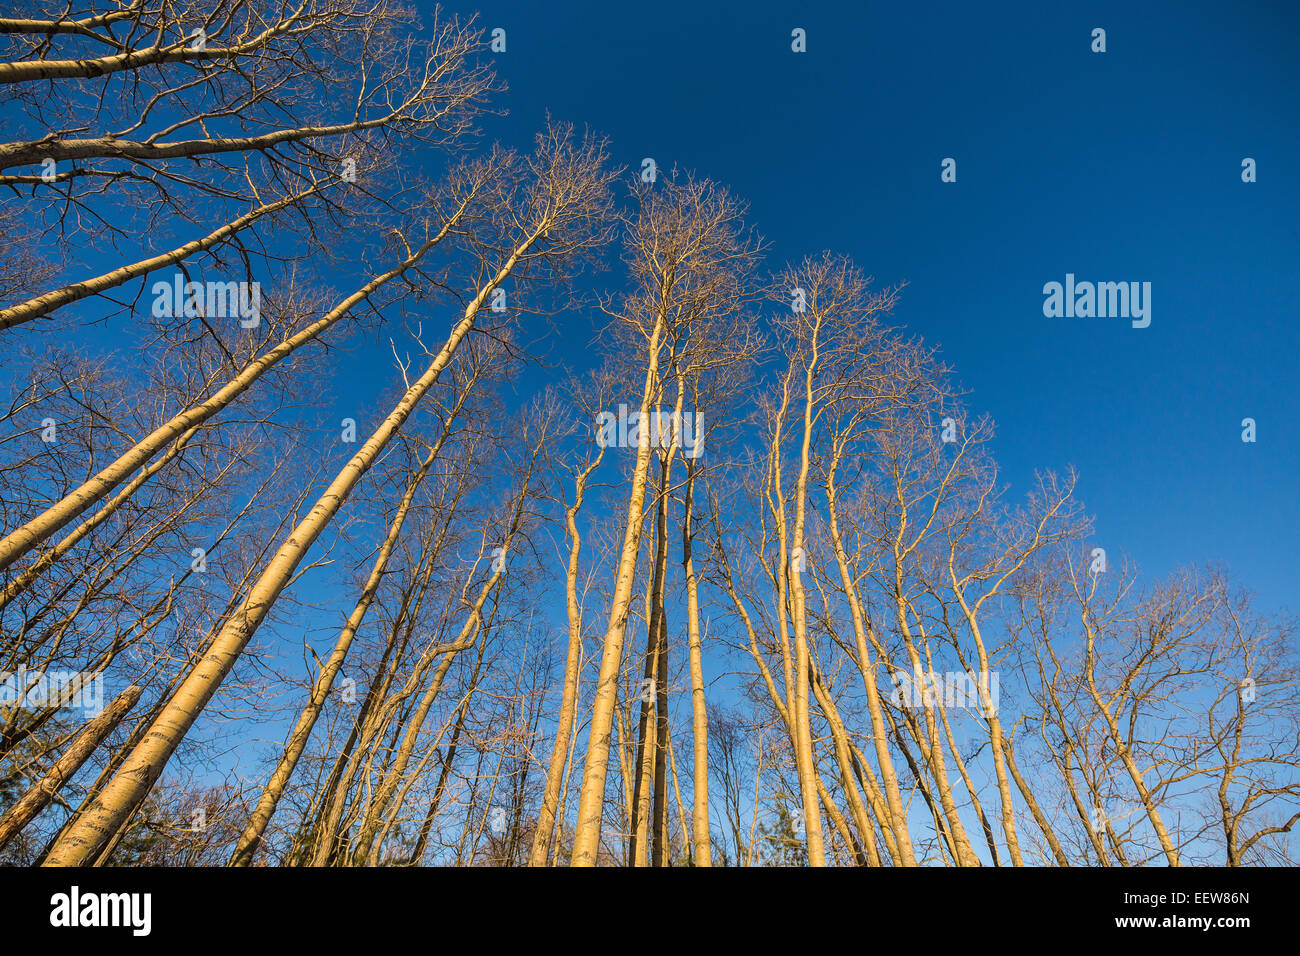 Bigtooth Aspen, Populus grandidentata, trees growing along a country road in Mecosta County near Stanwood, Michigan, Stock Photo